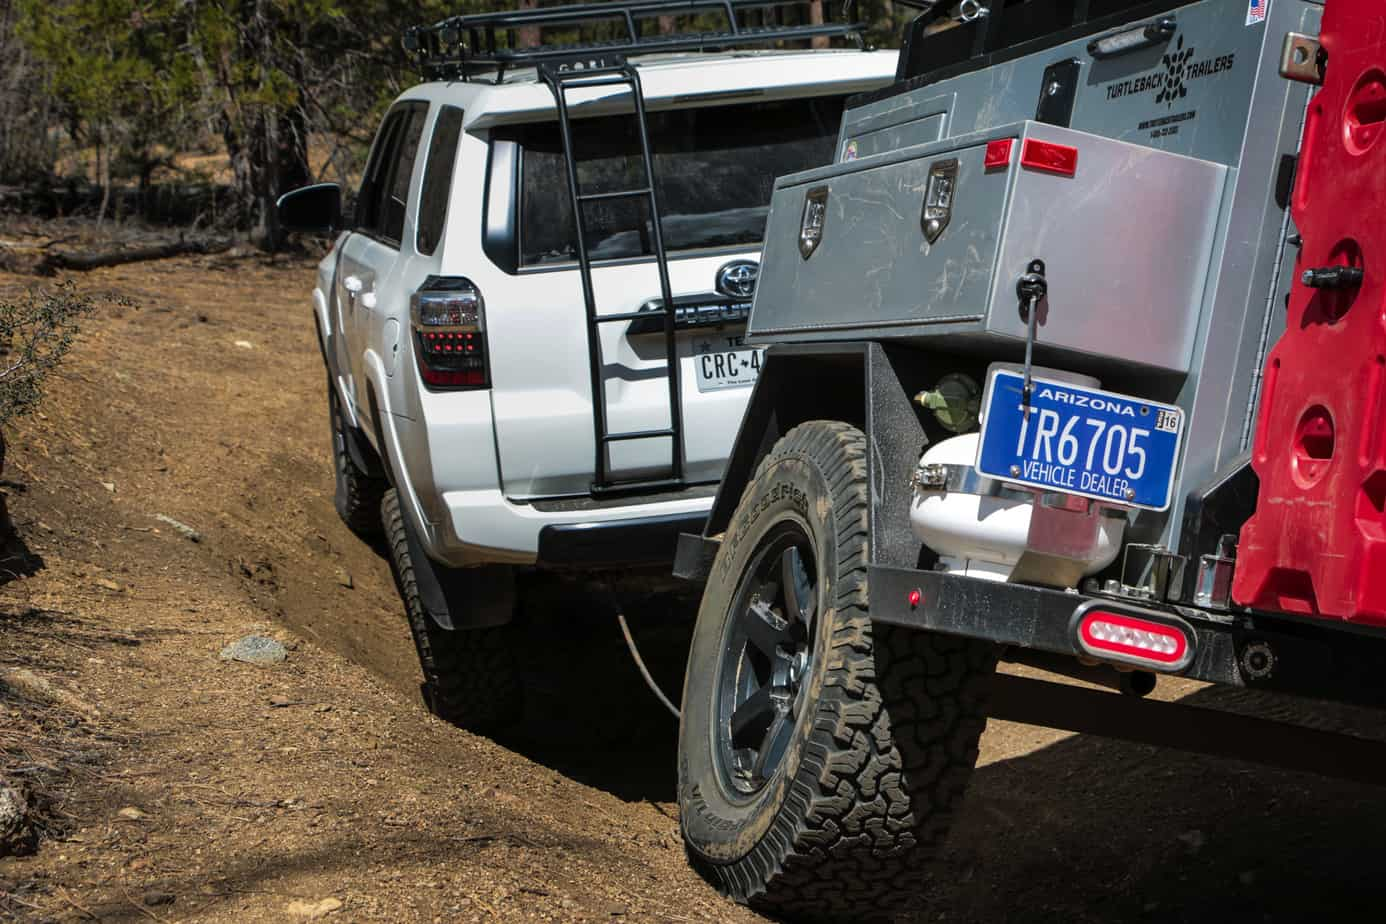 Turtleback Trailers A Comprehensive Review Expedition Portal Trailer Wiring Diagram Western Australia Fortunately Its Low Stance And Reduced Weight Rating Improved The Ride When Compared To Every Other Torsion Axle Weve Tested But It Still Limits